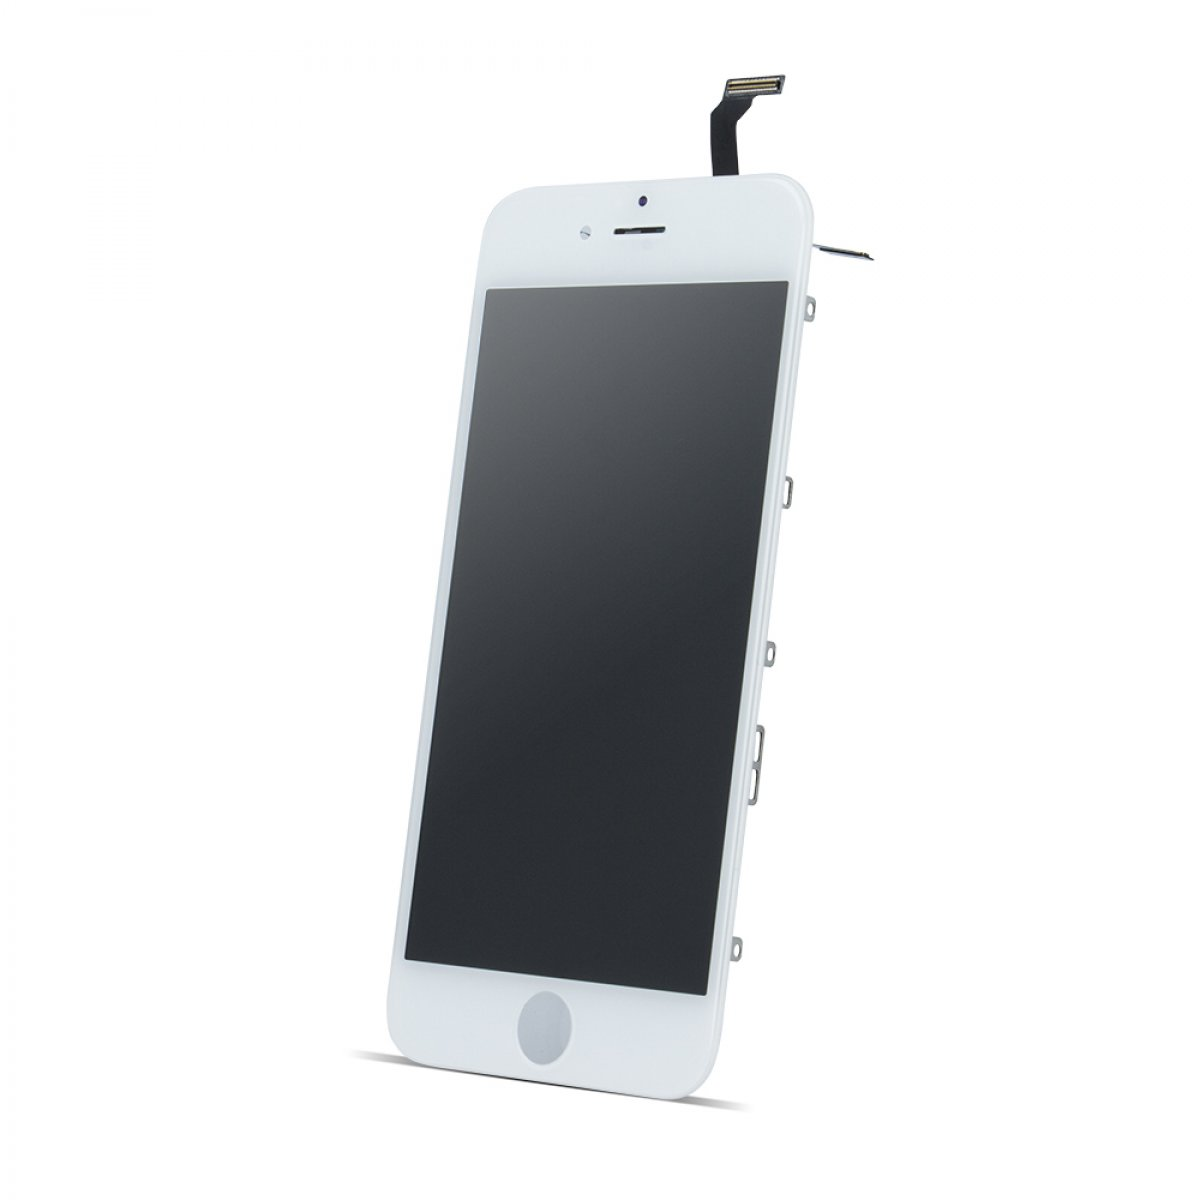 fhpilch.pl LCD + Panel Dotykowy do iPhone 6 biały TM AAA